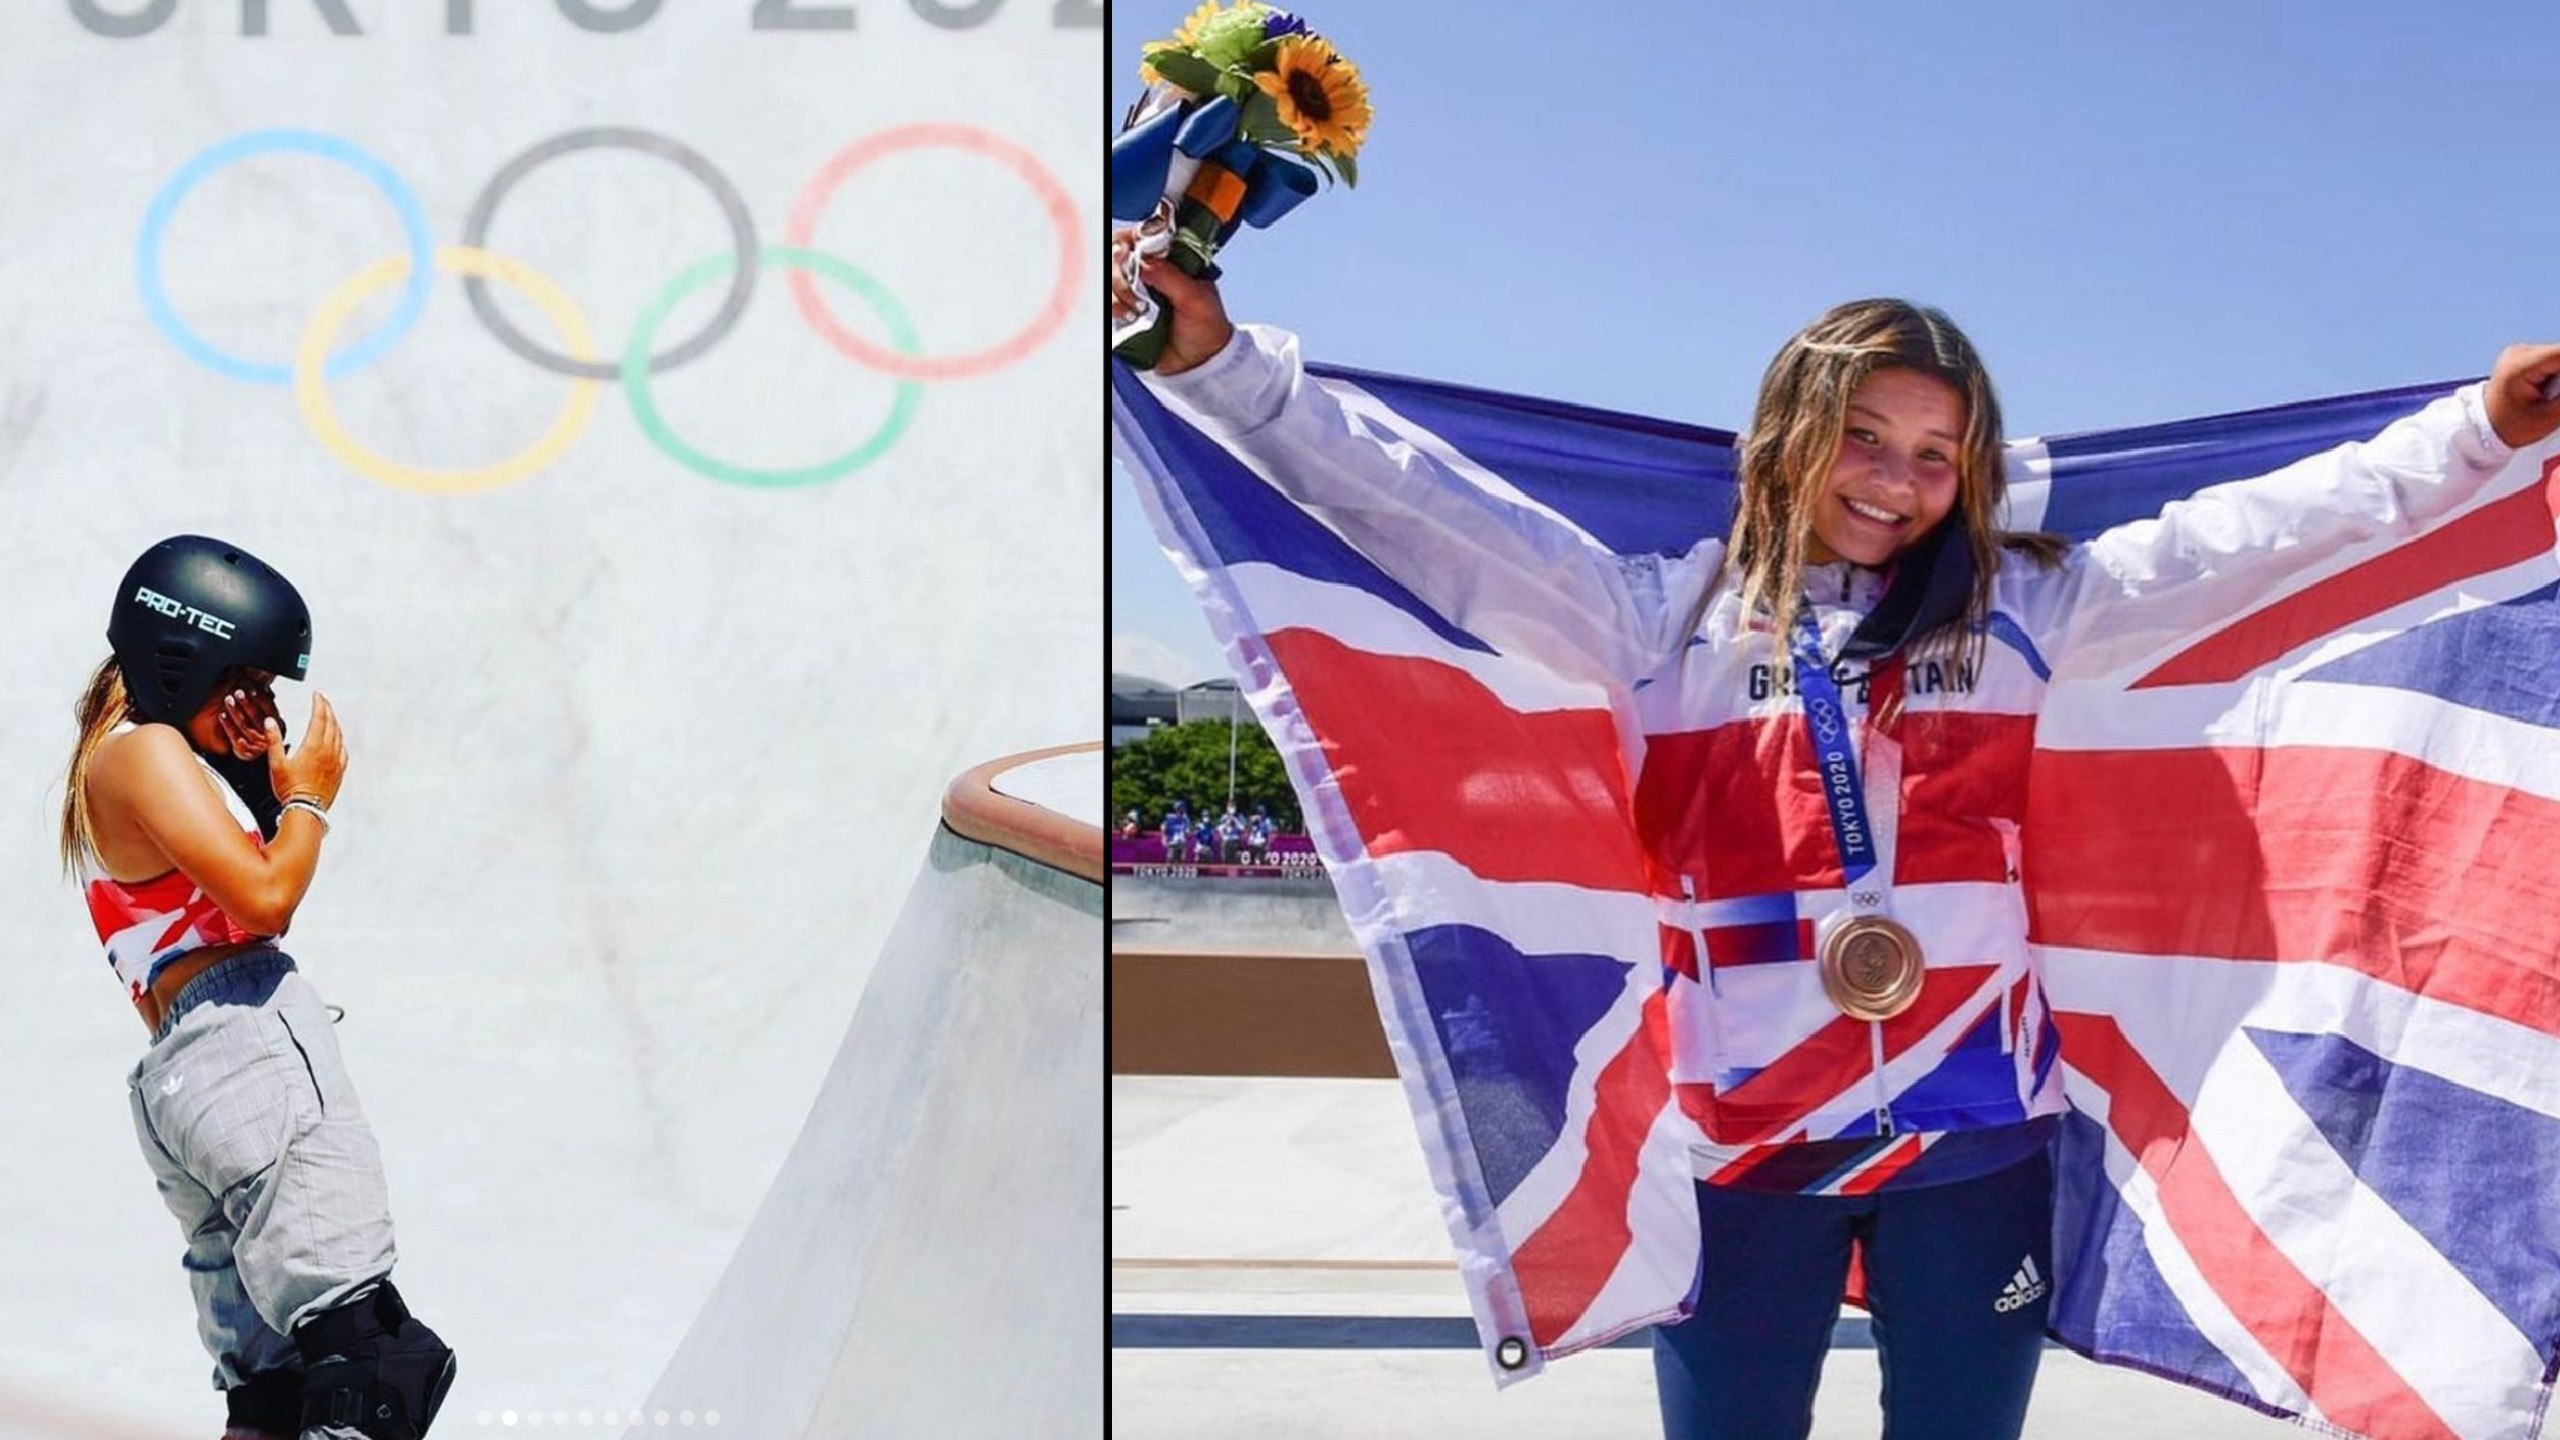 13-year-old skateboarder becomes Great Britain's youngest ever competitor